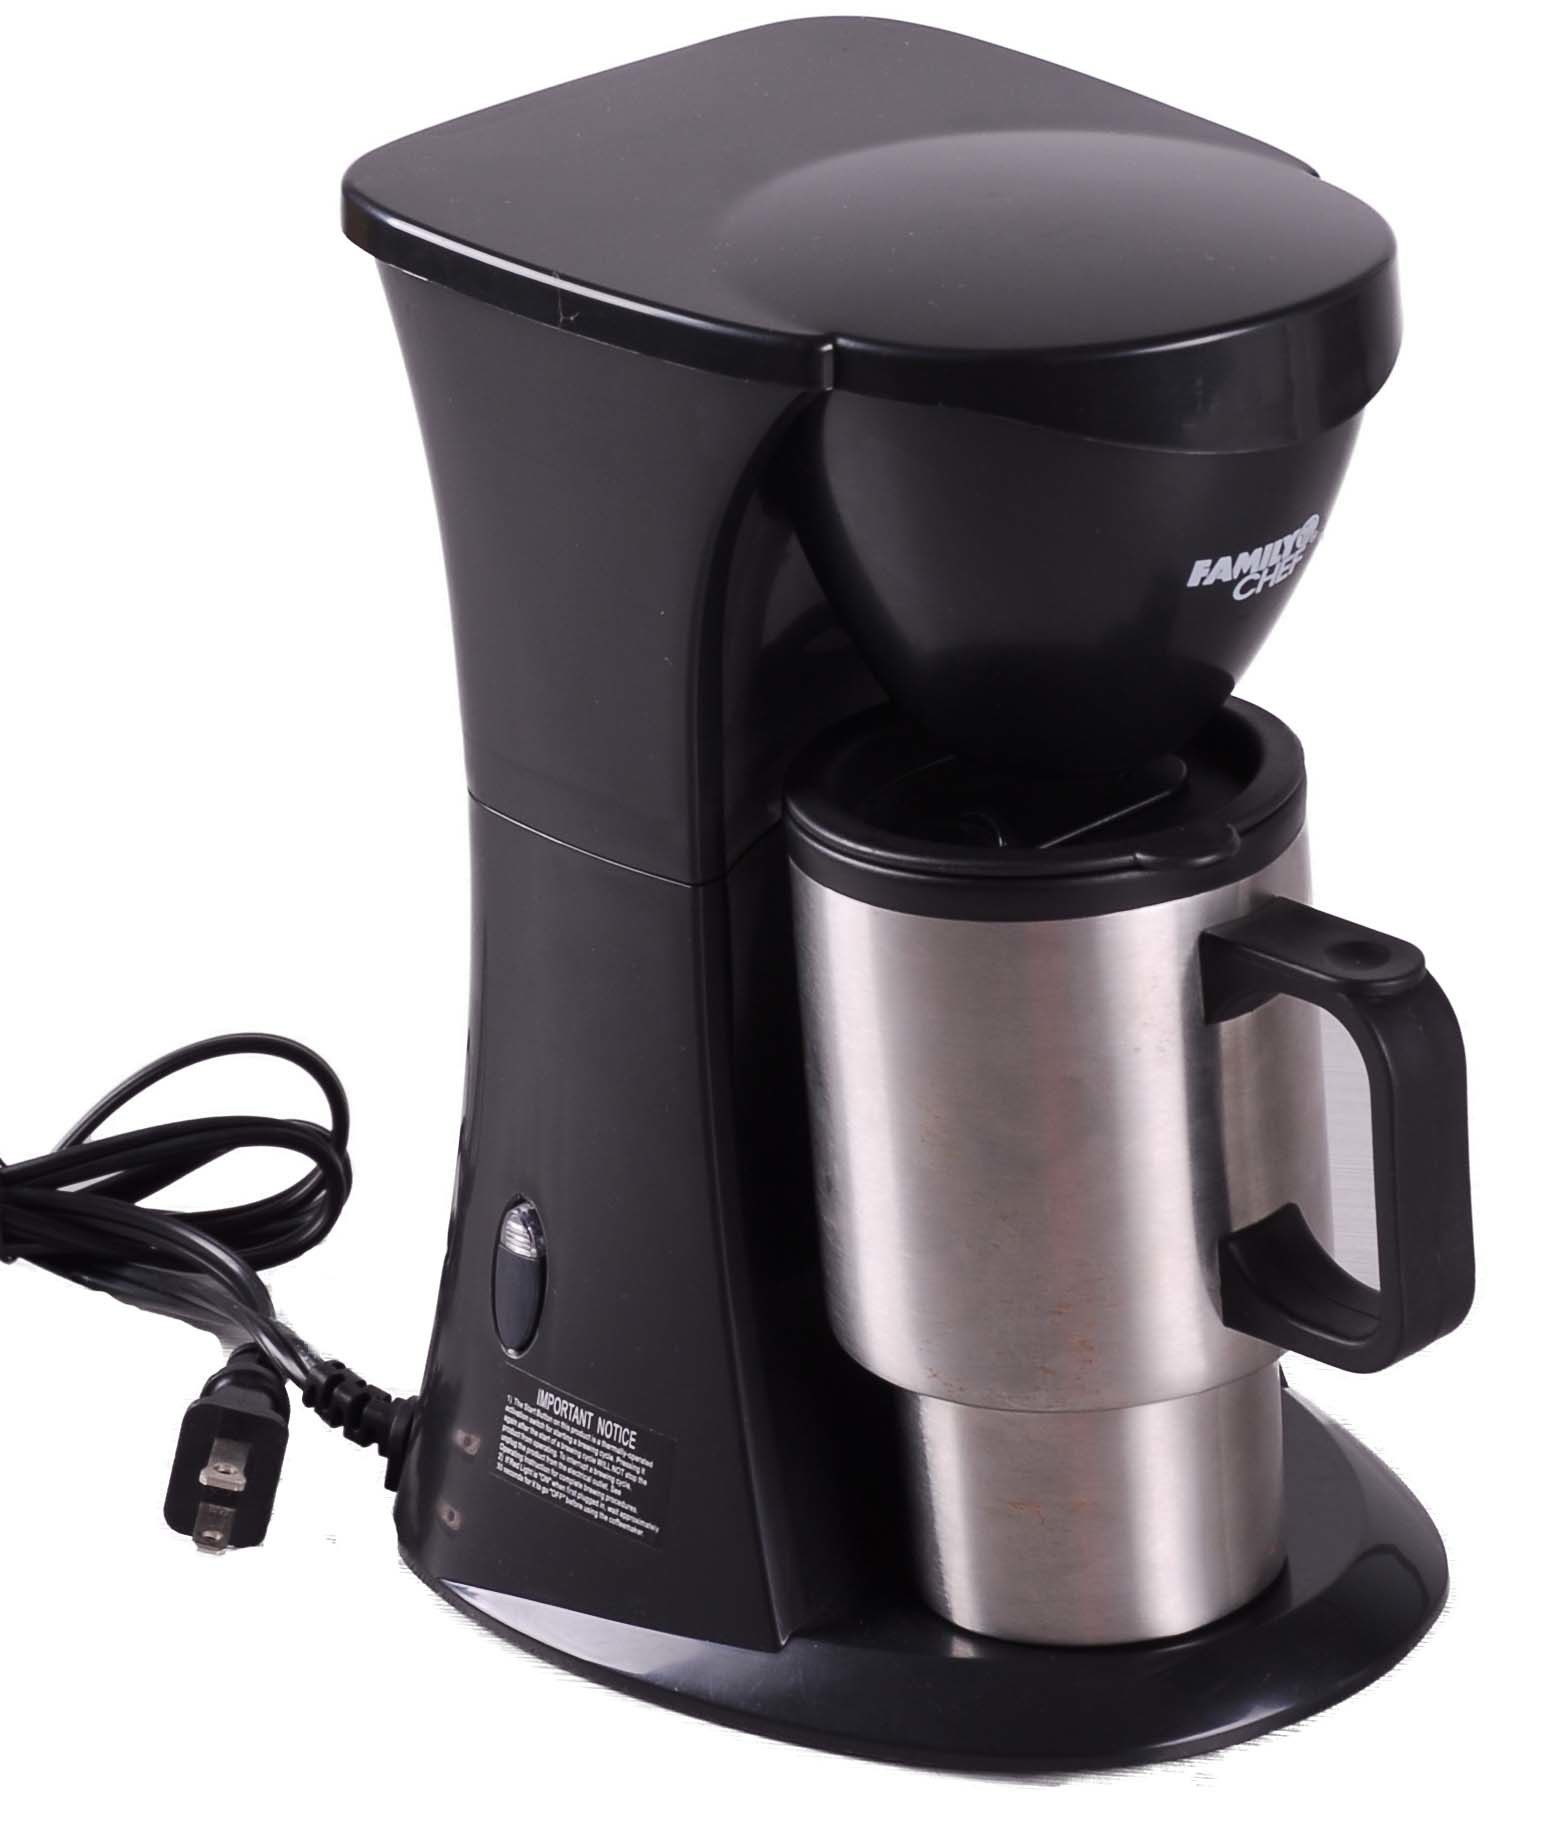 Best Coffee Maker Not Made In China : Ninja Cf086 Thermal Coffee Bar Coffee Makers For The Home Shop - Coffeemaker